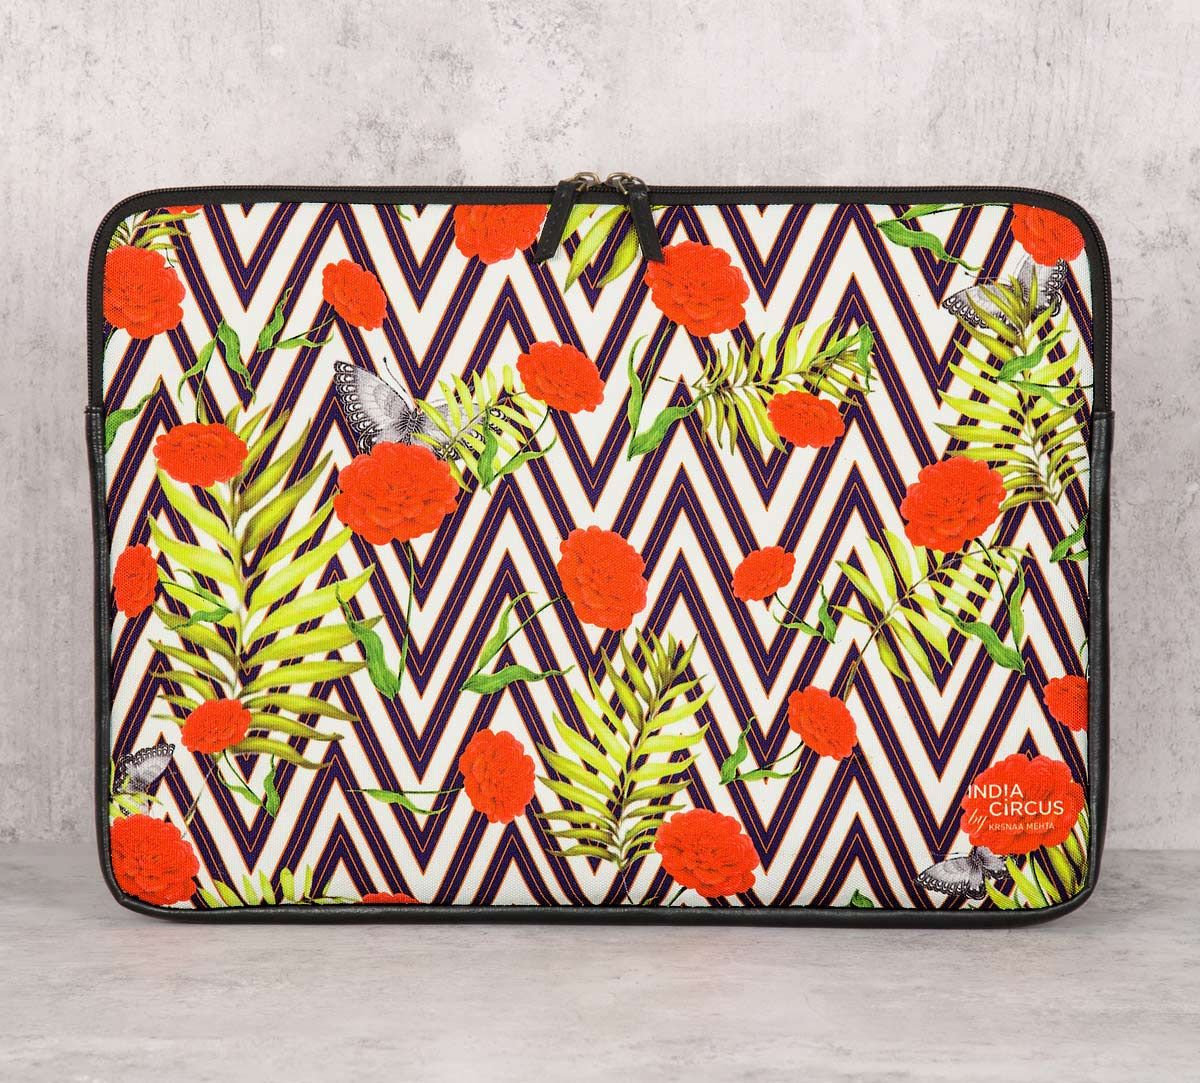 India Circus Bayrose Chevron Laptop Sleeve